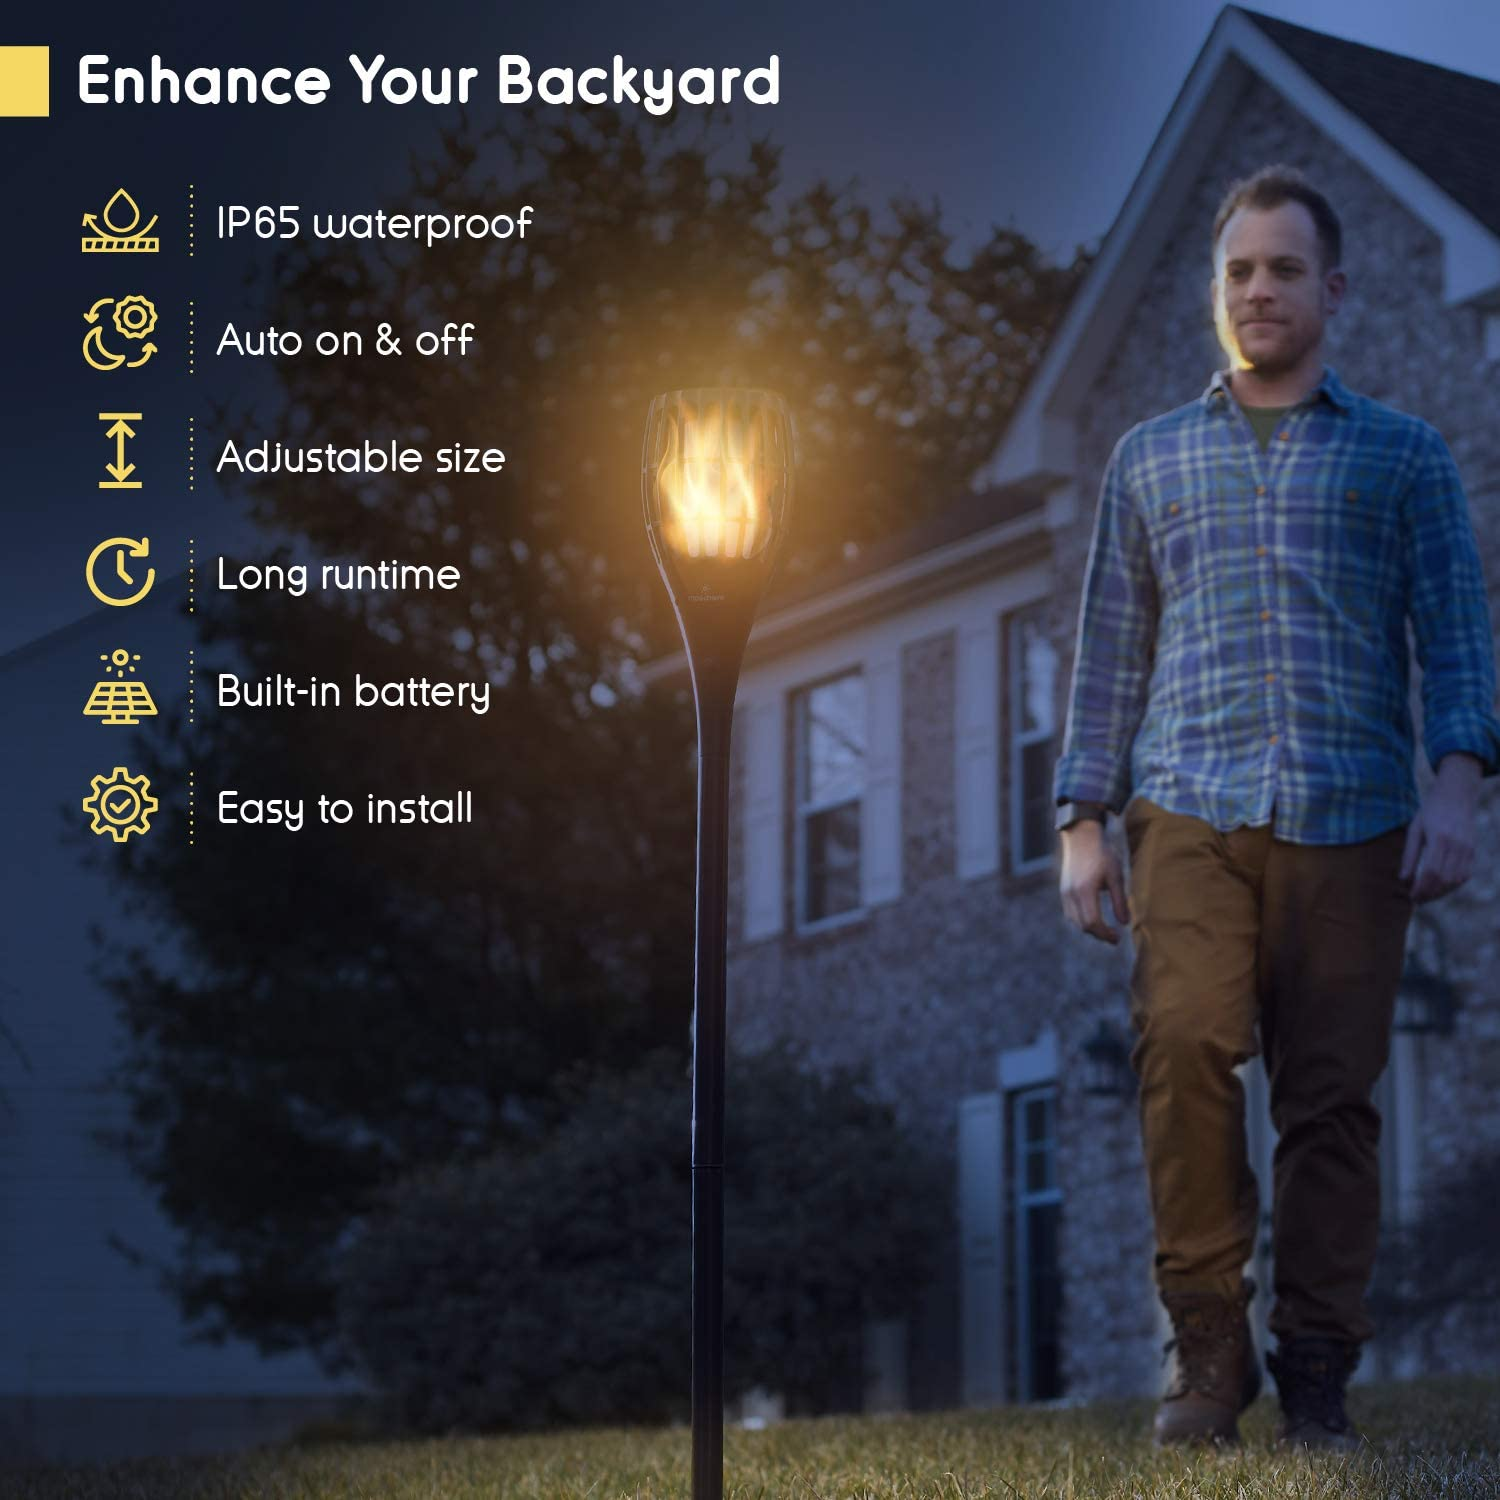 1 Pack Everbeam P1 Solar Torch Light with Flickering Flame Our Waterproof Outdoor Solar Tiki Torches Come Equipped with 96 LED Bulbs That Create A Stunning Realistic Fire Effect